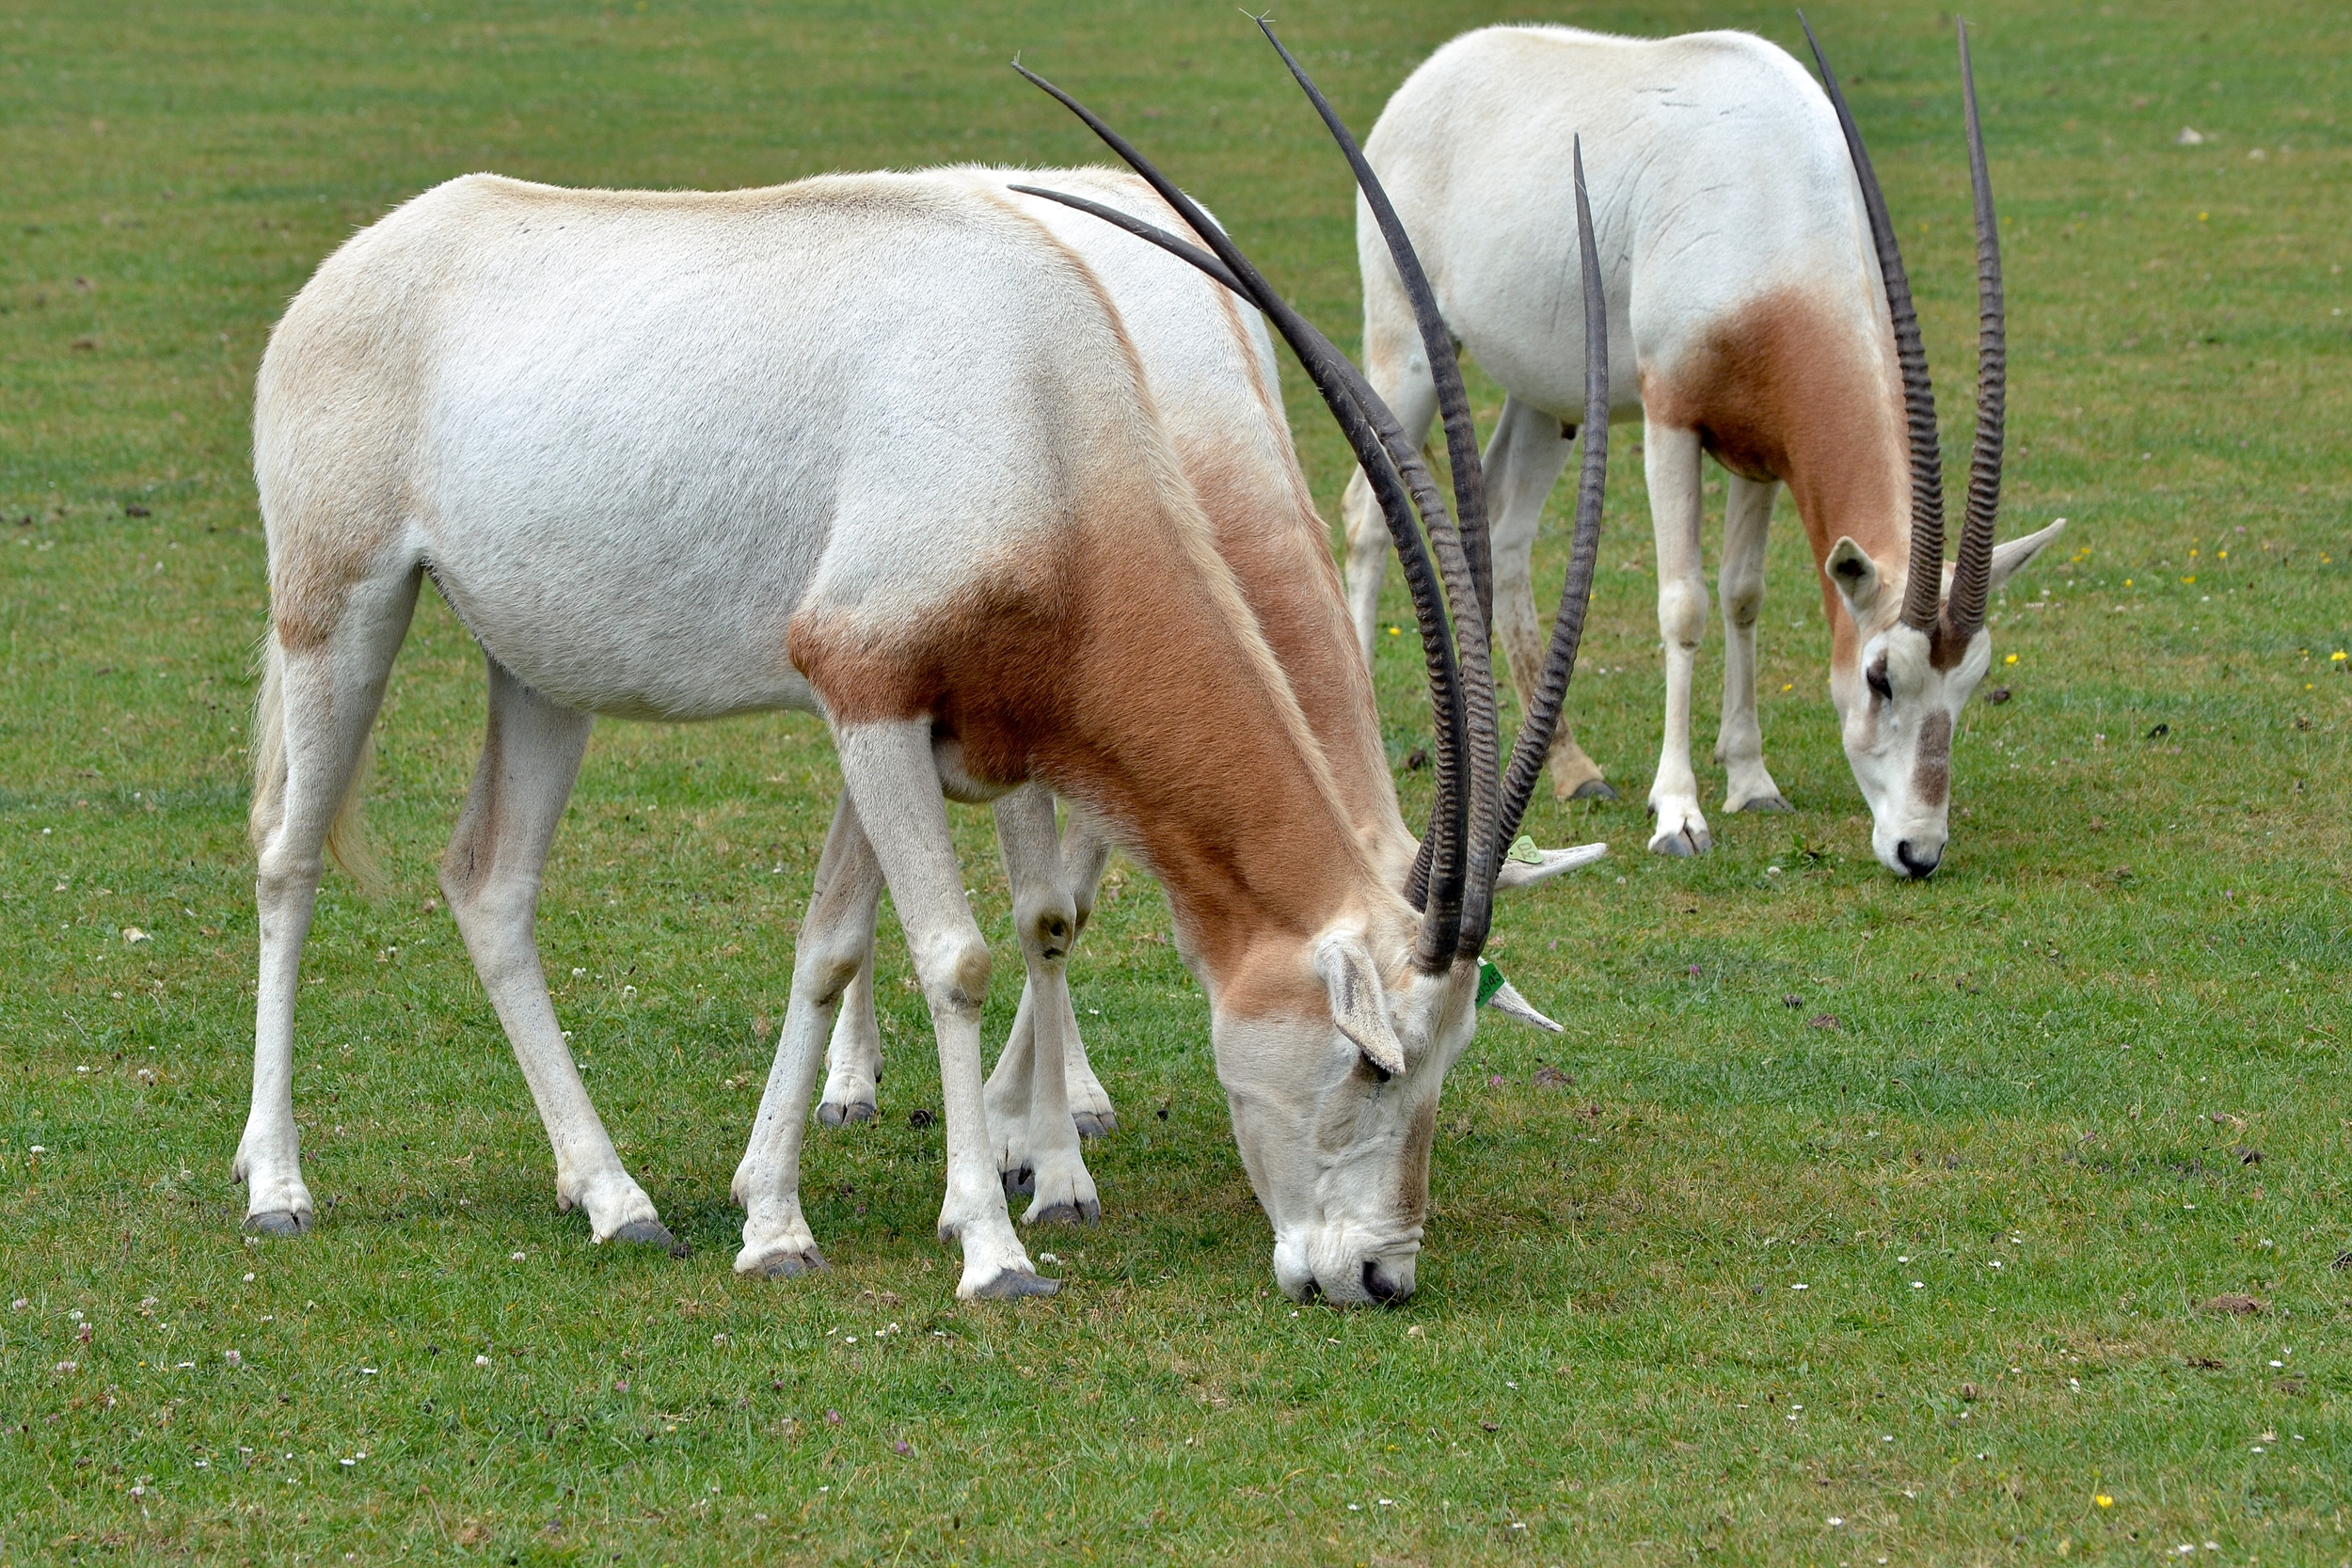 A group of scimitar oryx at Marwell Zoo in Hampshire, Great Britain |  The Land/Wikimedia Commons  [ CC BY-SA 3.0 ]